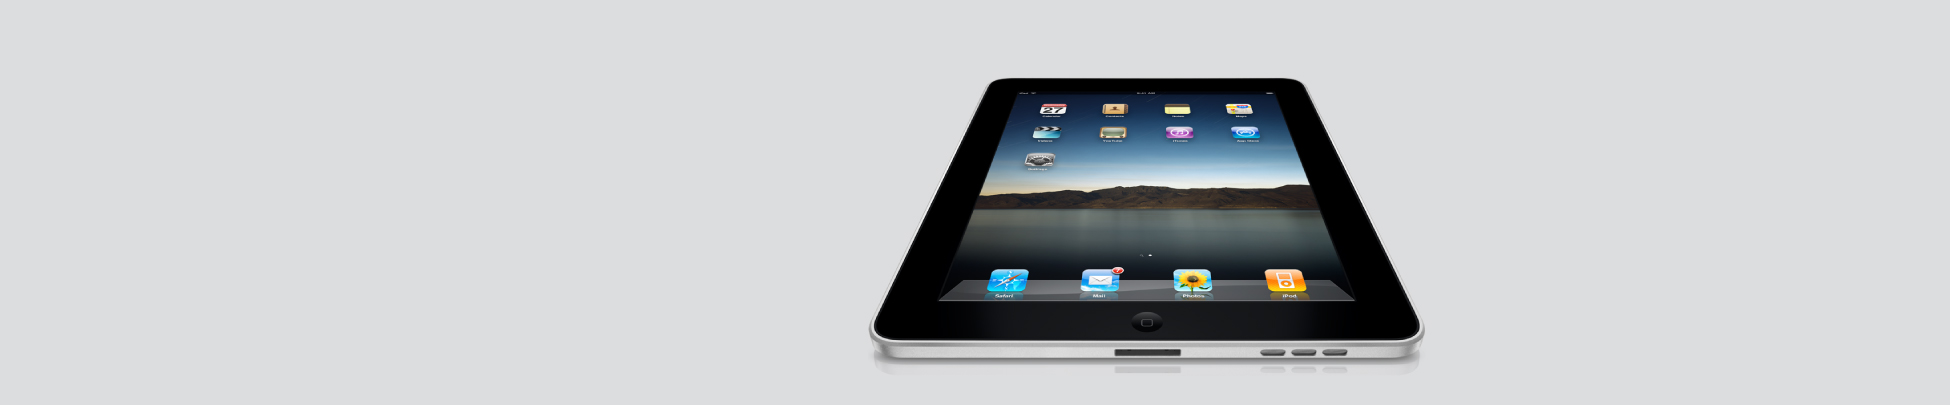 iPad-Give-Away-Slider_grey